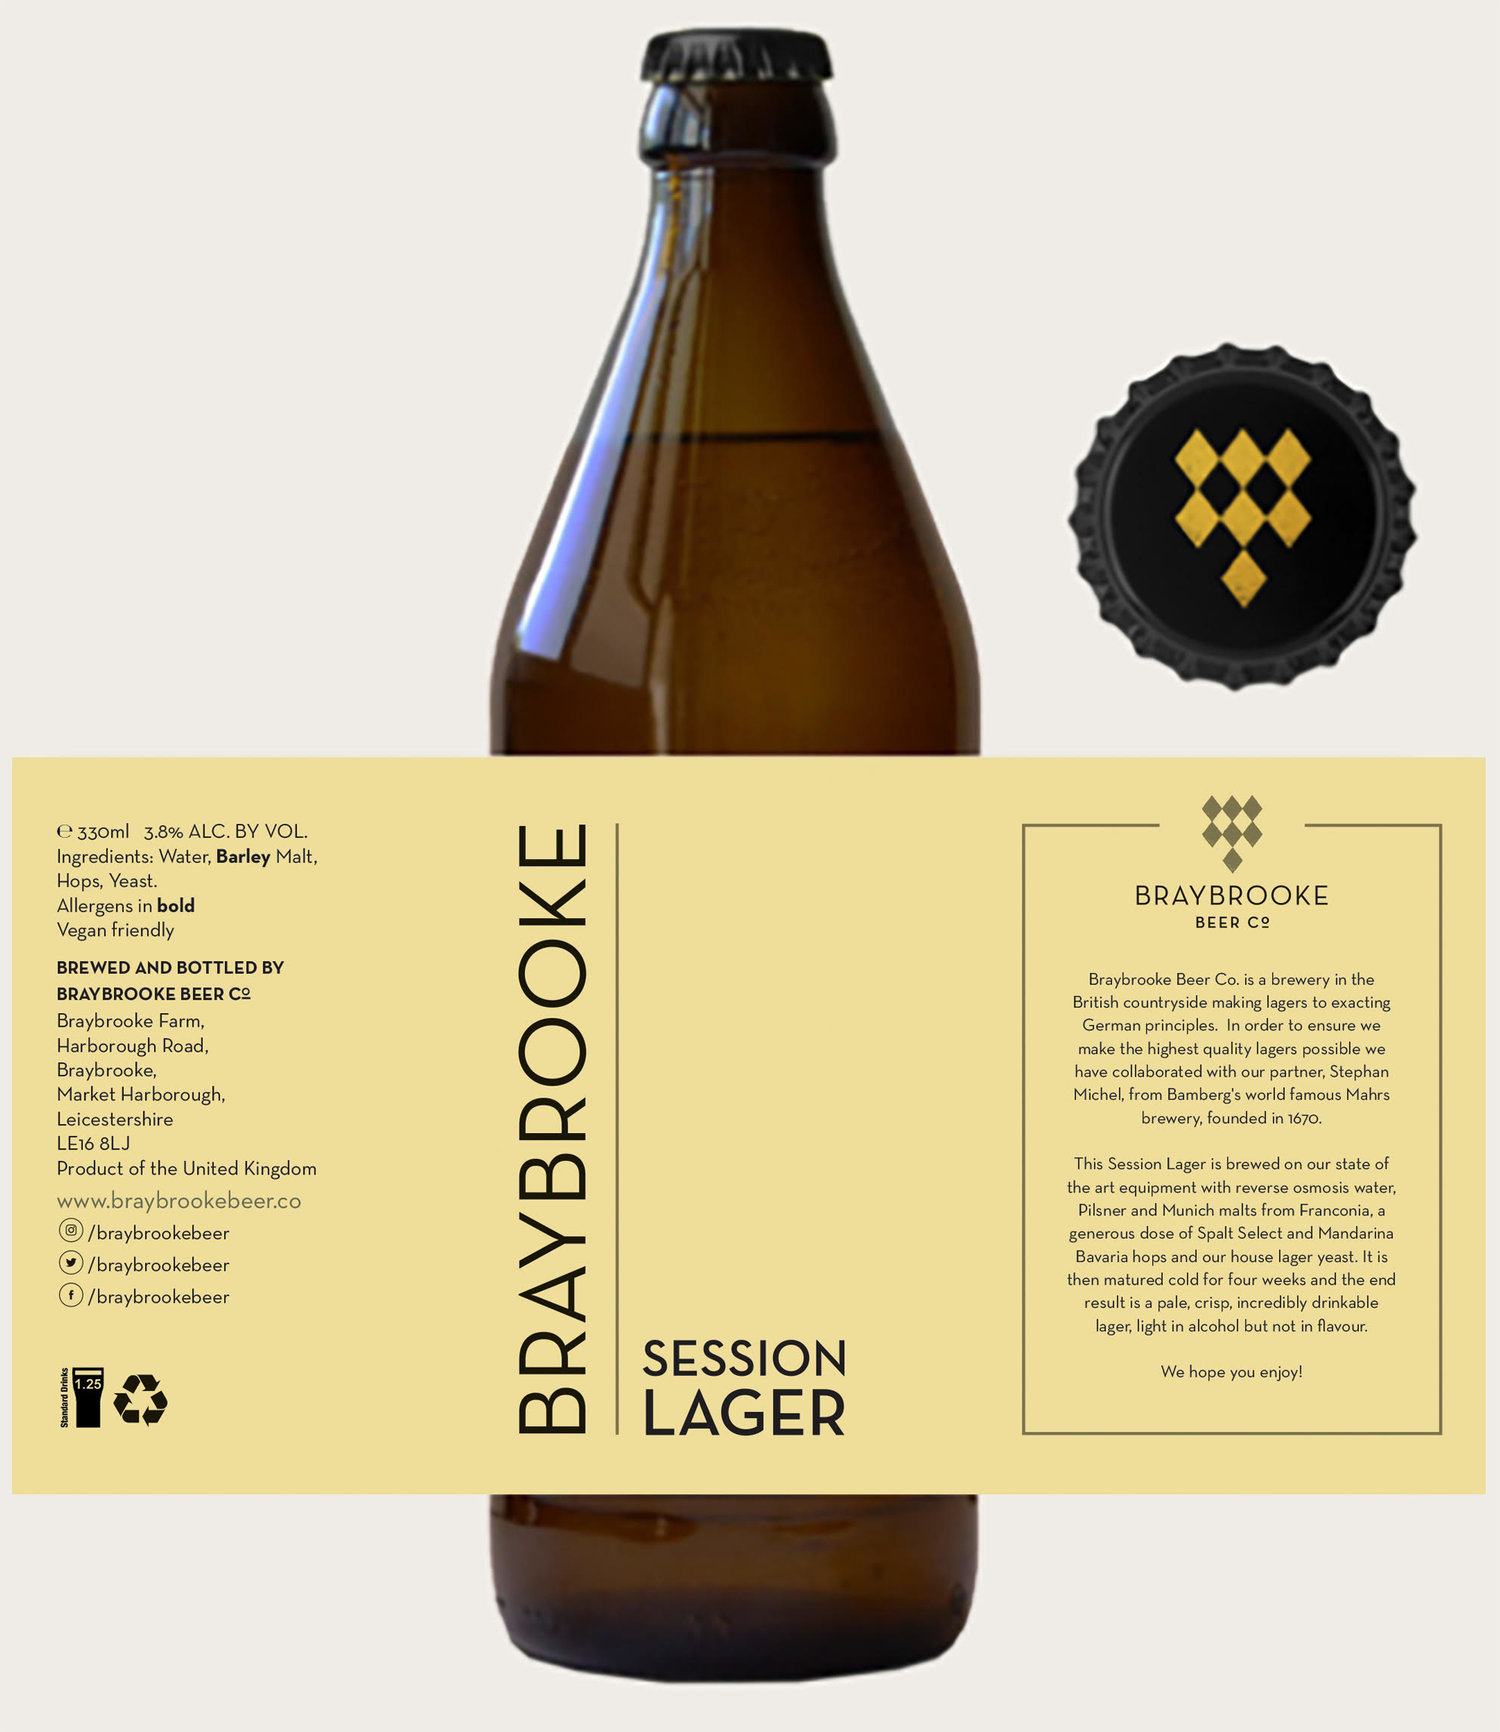 BRAYBROOKE / SESSION LAGER / 3.8% ABV / 330ML